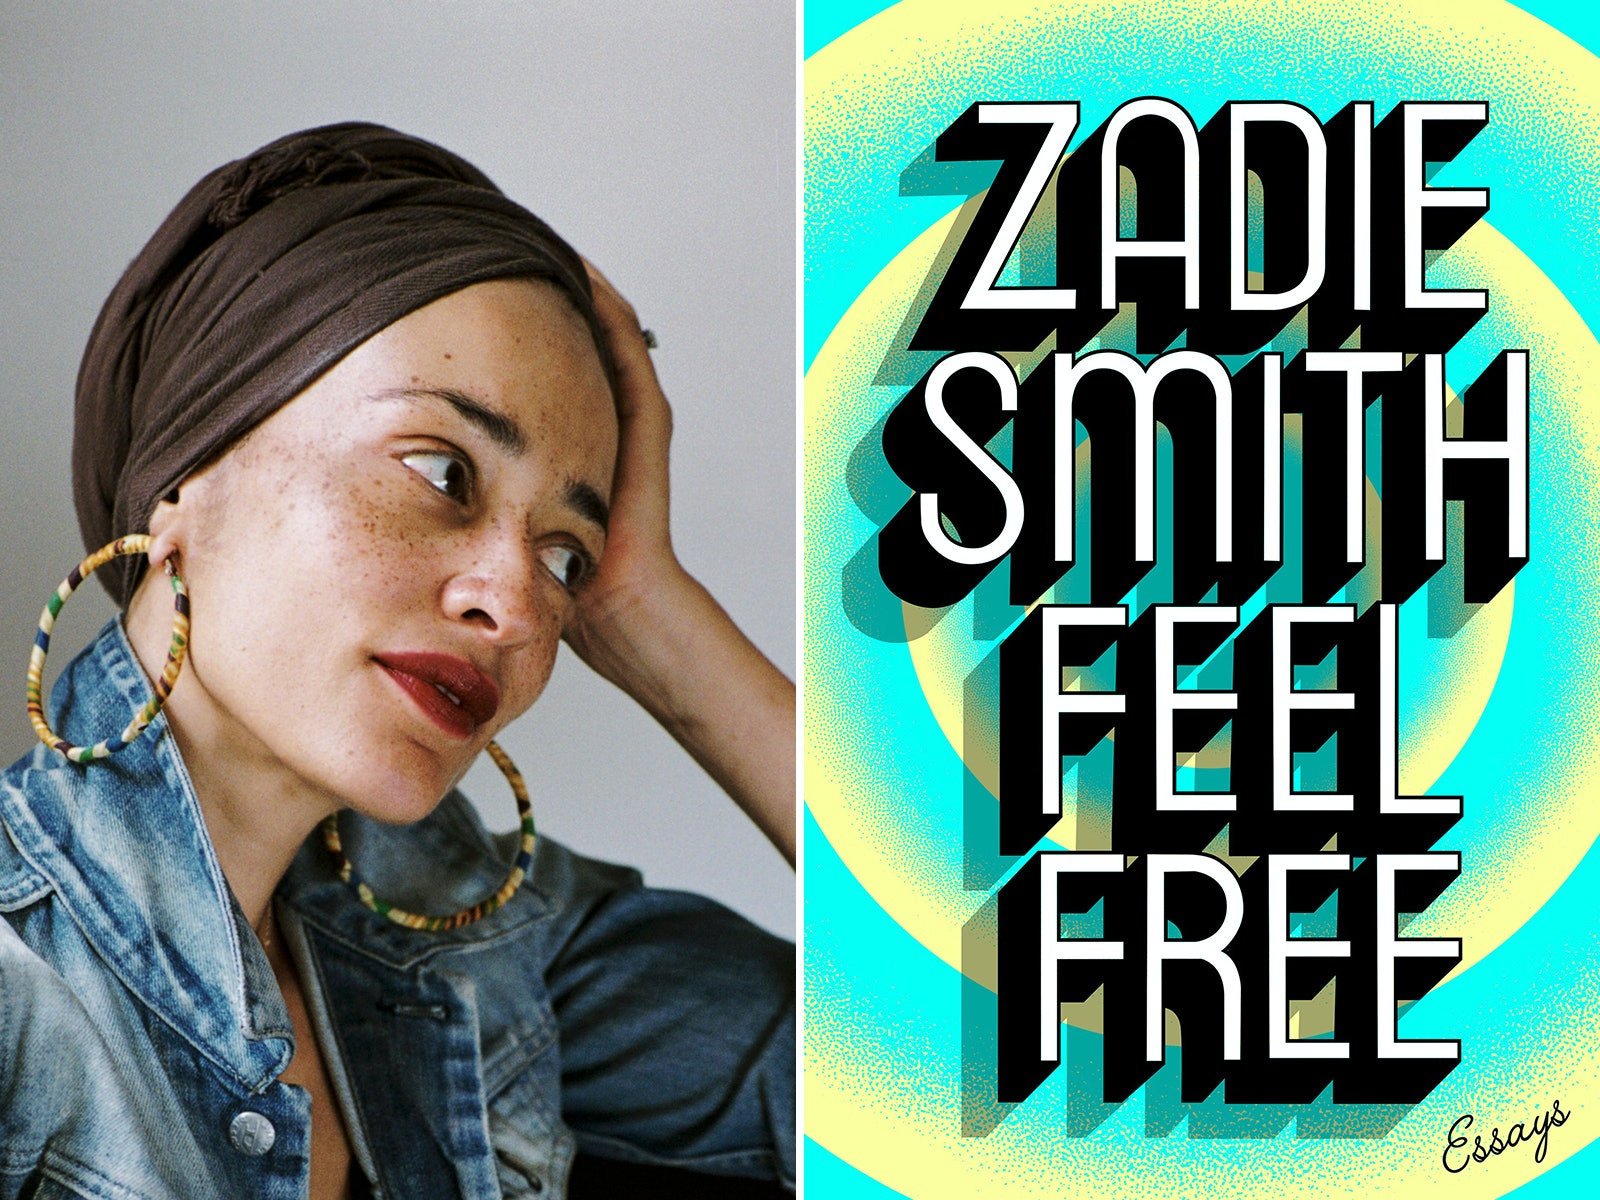 zadie smiths essay on joni mitchell